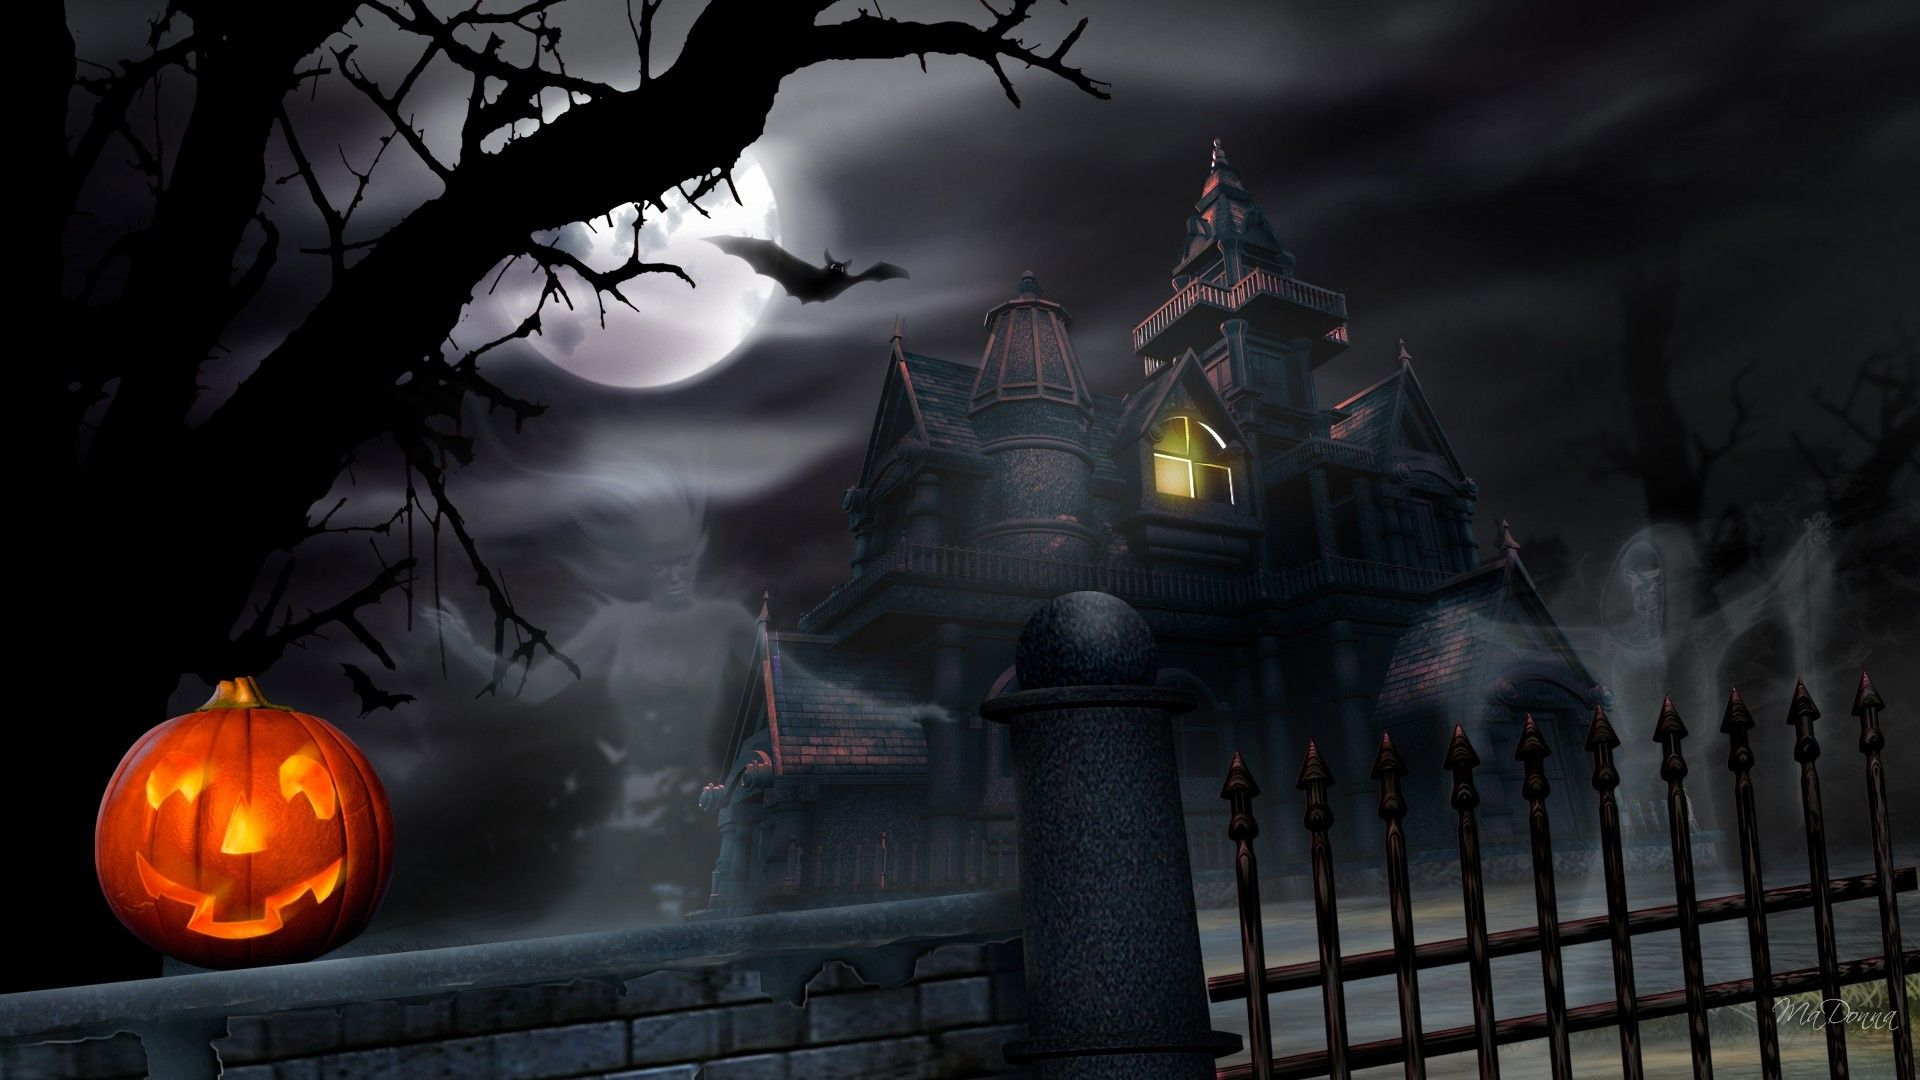 Free Halloween Wallpaper Desktop Wallpaper Hd 2005 Halloween